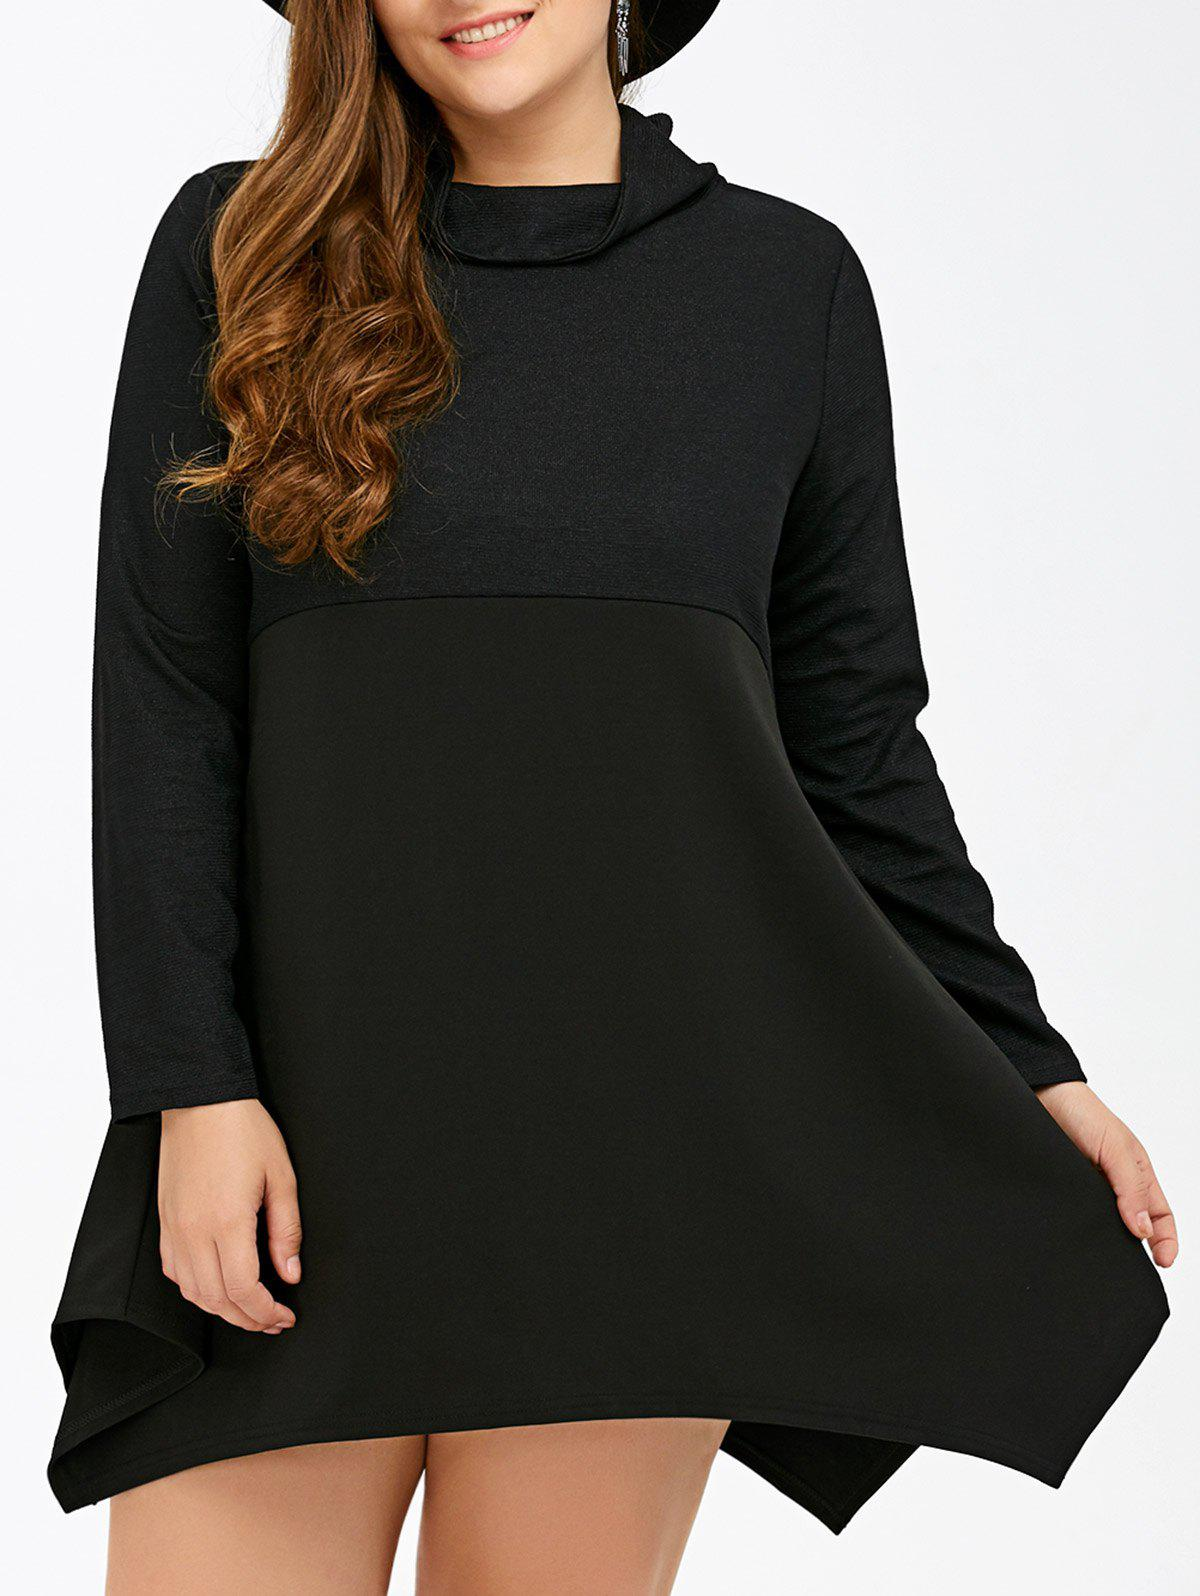 где купить Long Sleeve Asymmetrical Plus Size Handkerchief Dress дешево